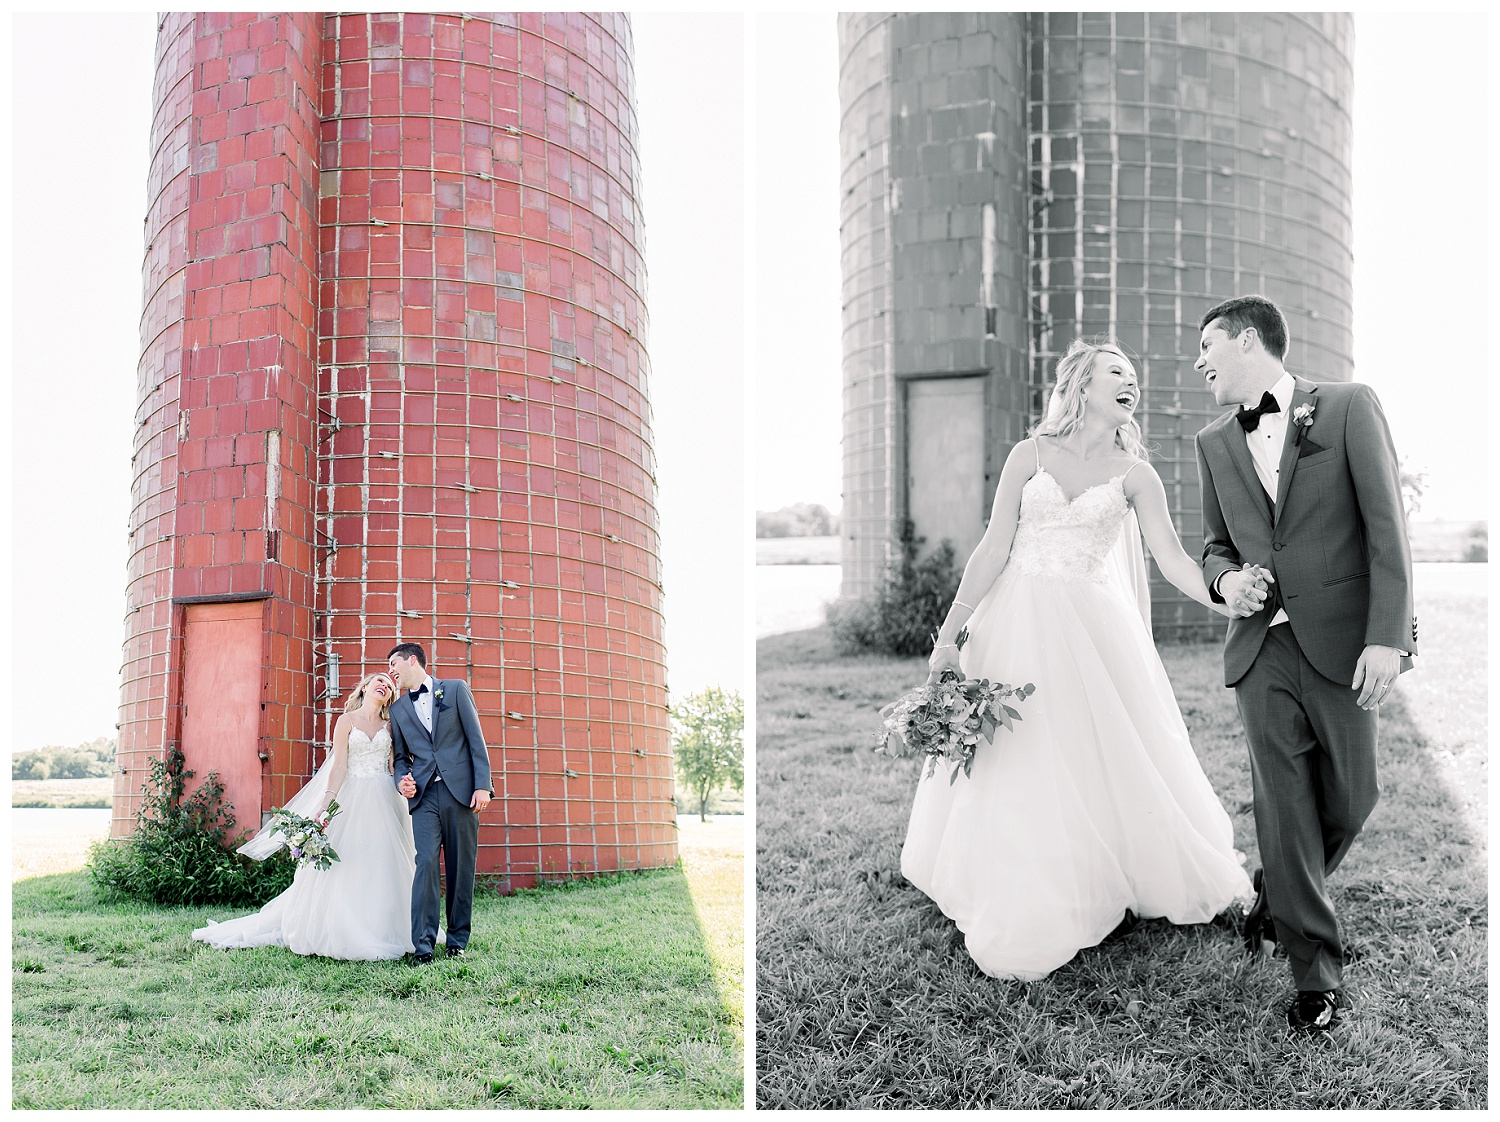 wedding and elopement photographer in the midwest